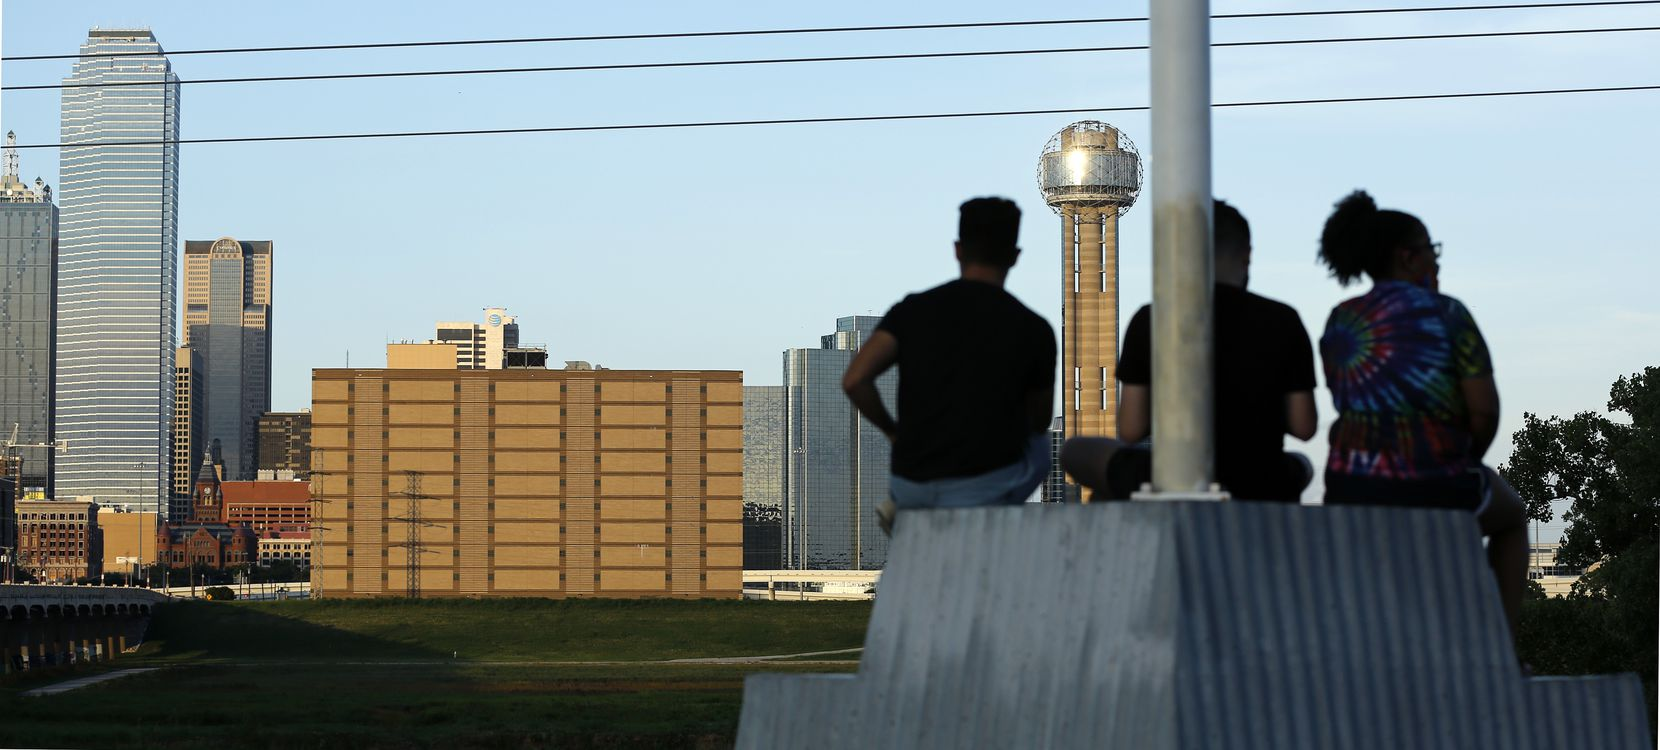 People at the Trinity Overlook Park watch as the sun sets on downtown Dallas and the former Jesse R. Dawson State Jail (center) at 106 West Commerce St.